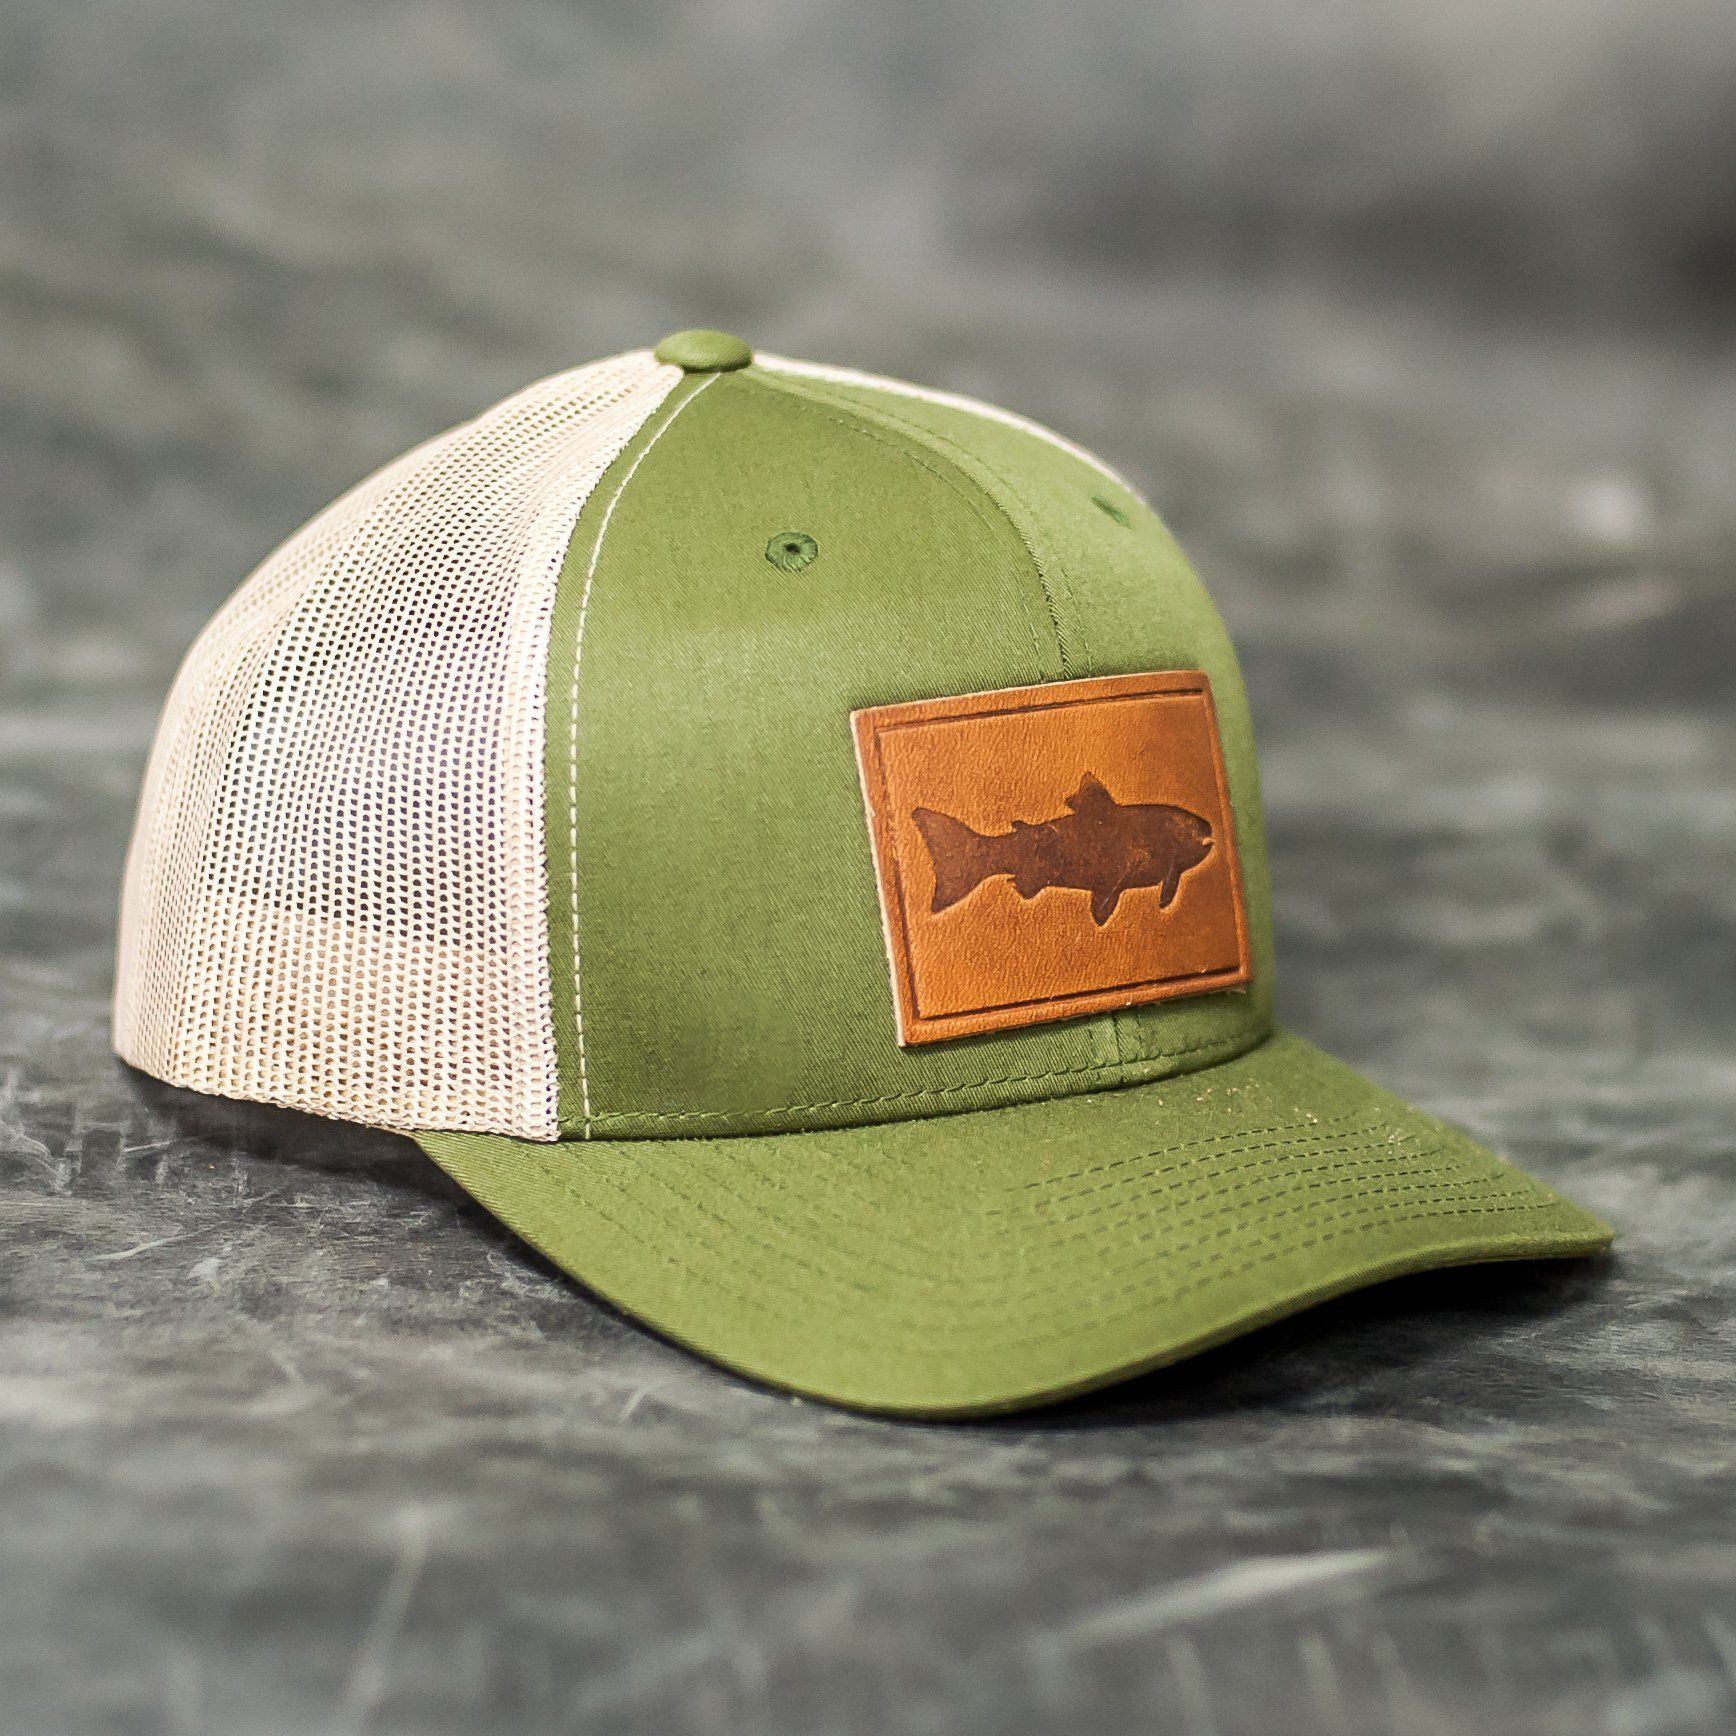 Leather Patch Trucker Style Hats Fish Logo Leather Patches Horween Leather Leather